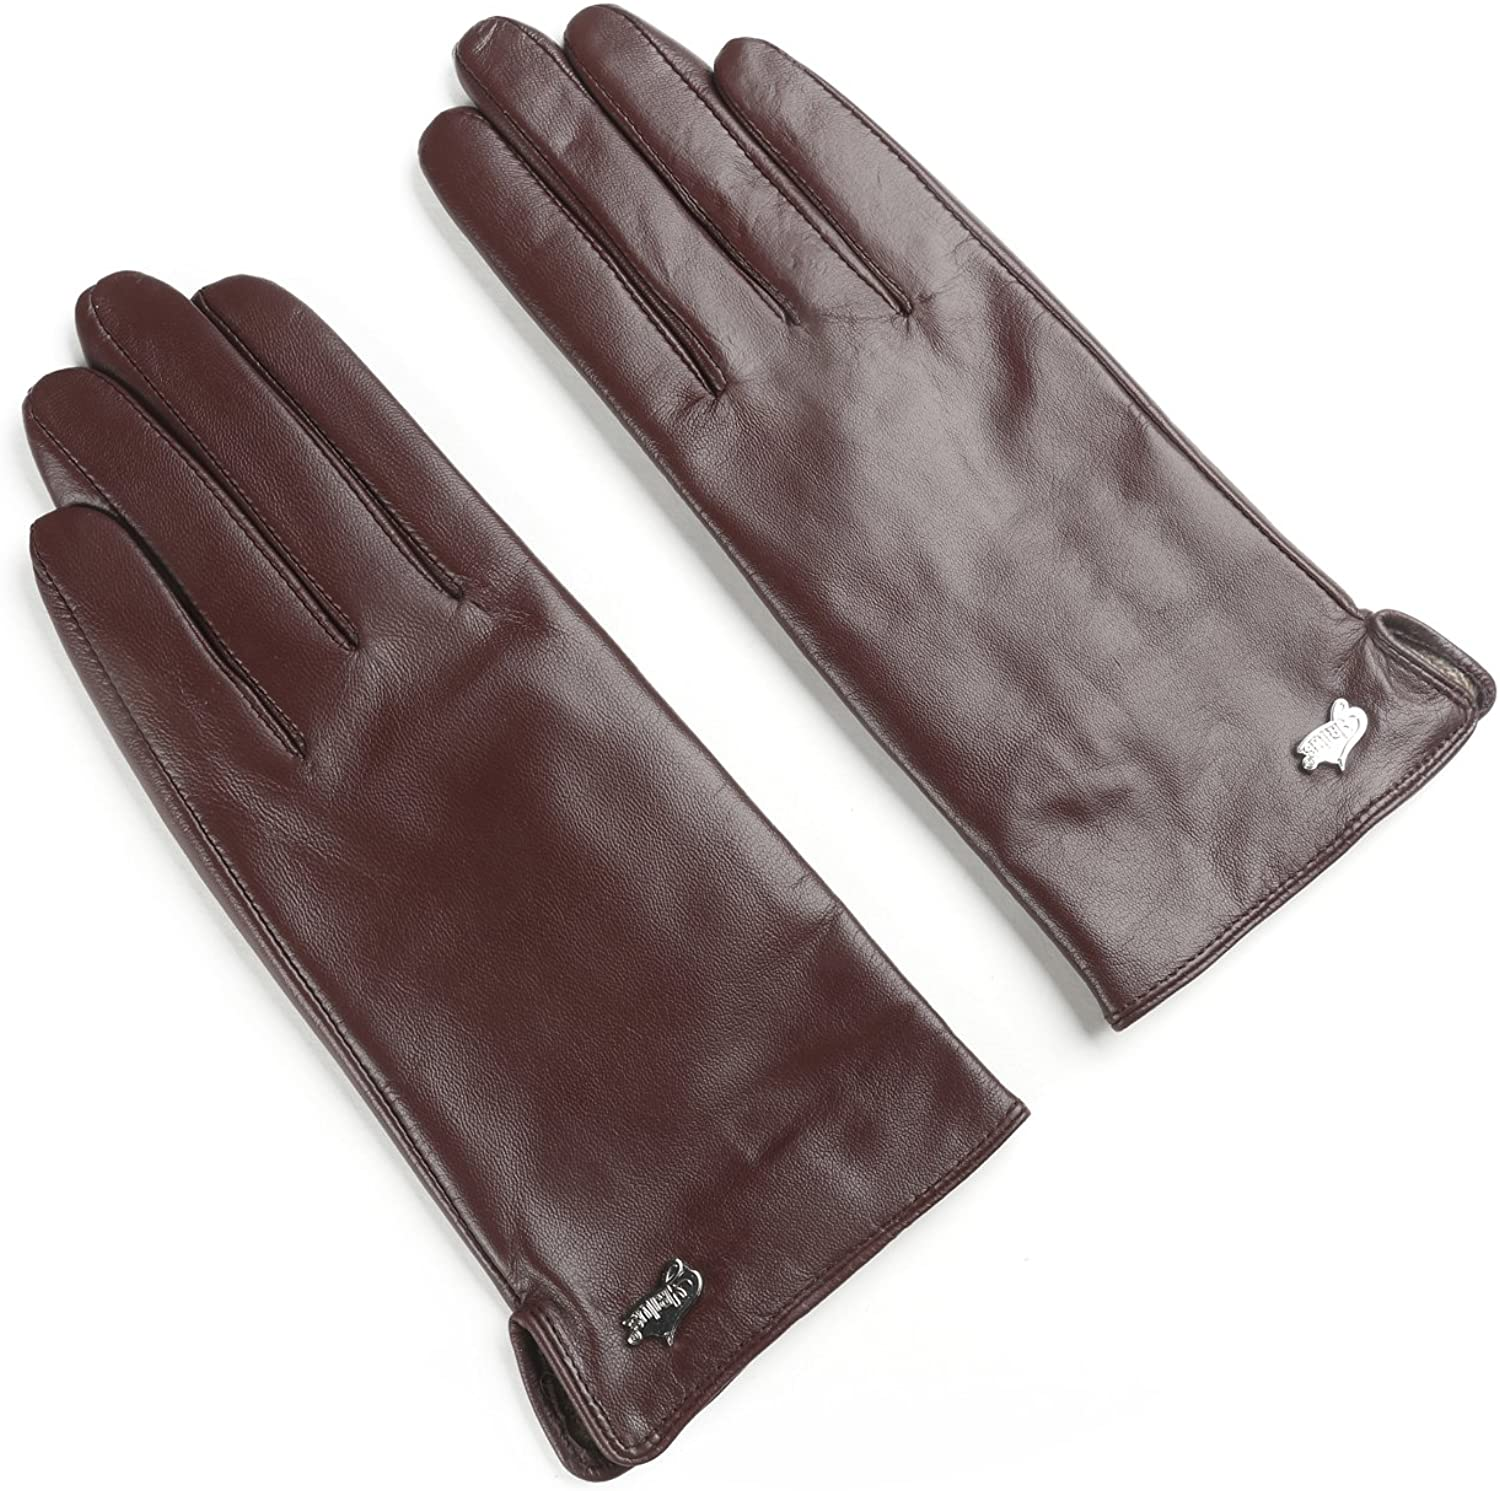 Ambesi Women's Cashmere Lined Nappa Leather Winter Gloves